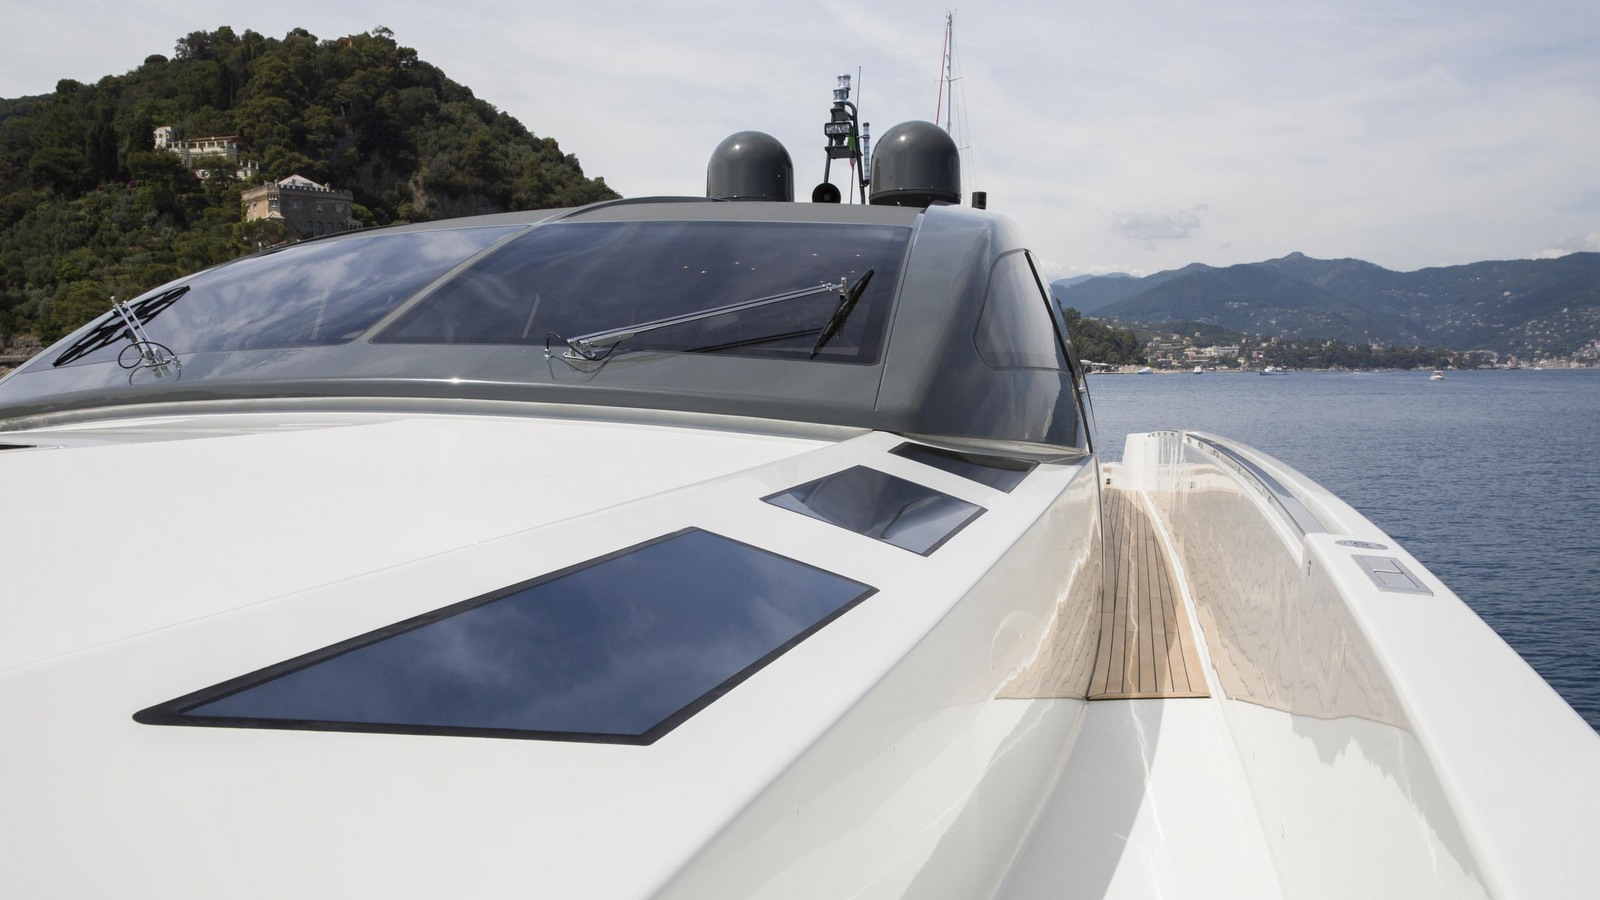 the-foredeck-of-the-otam-millennium-80ht-yacht-mystere